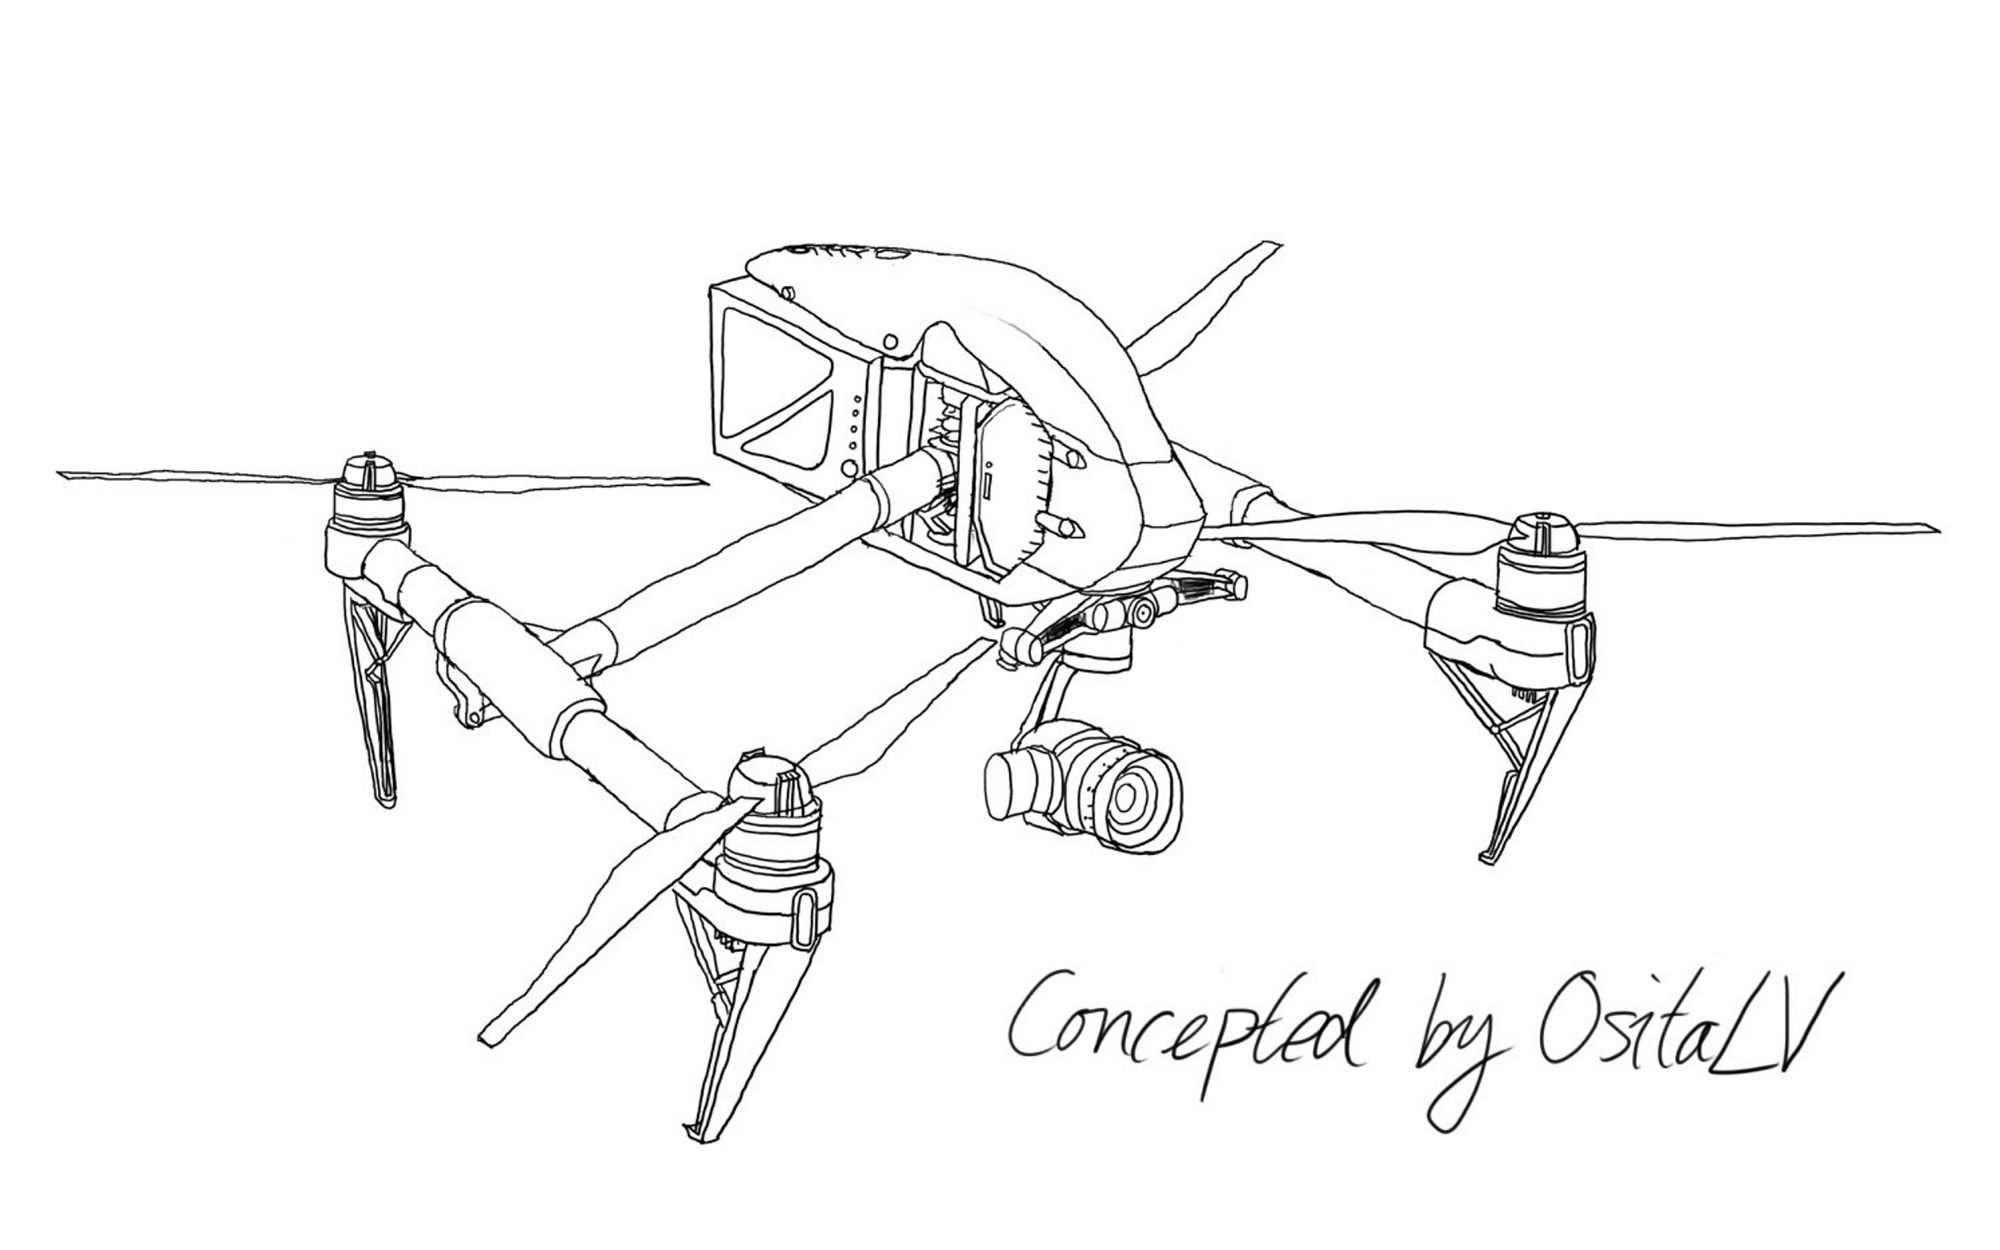 New drawings of the DJI Inspire 3 and Zenmuse X6, X7s, X8